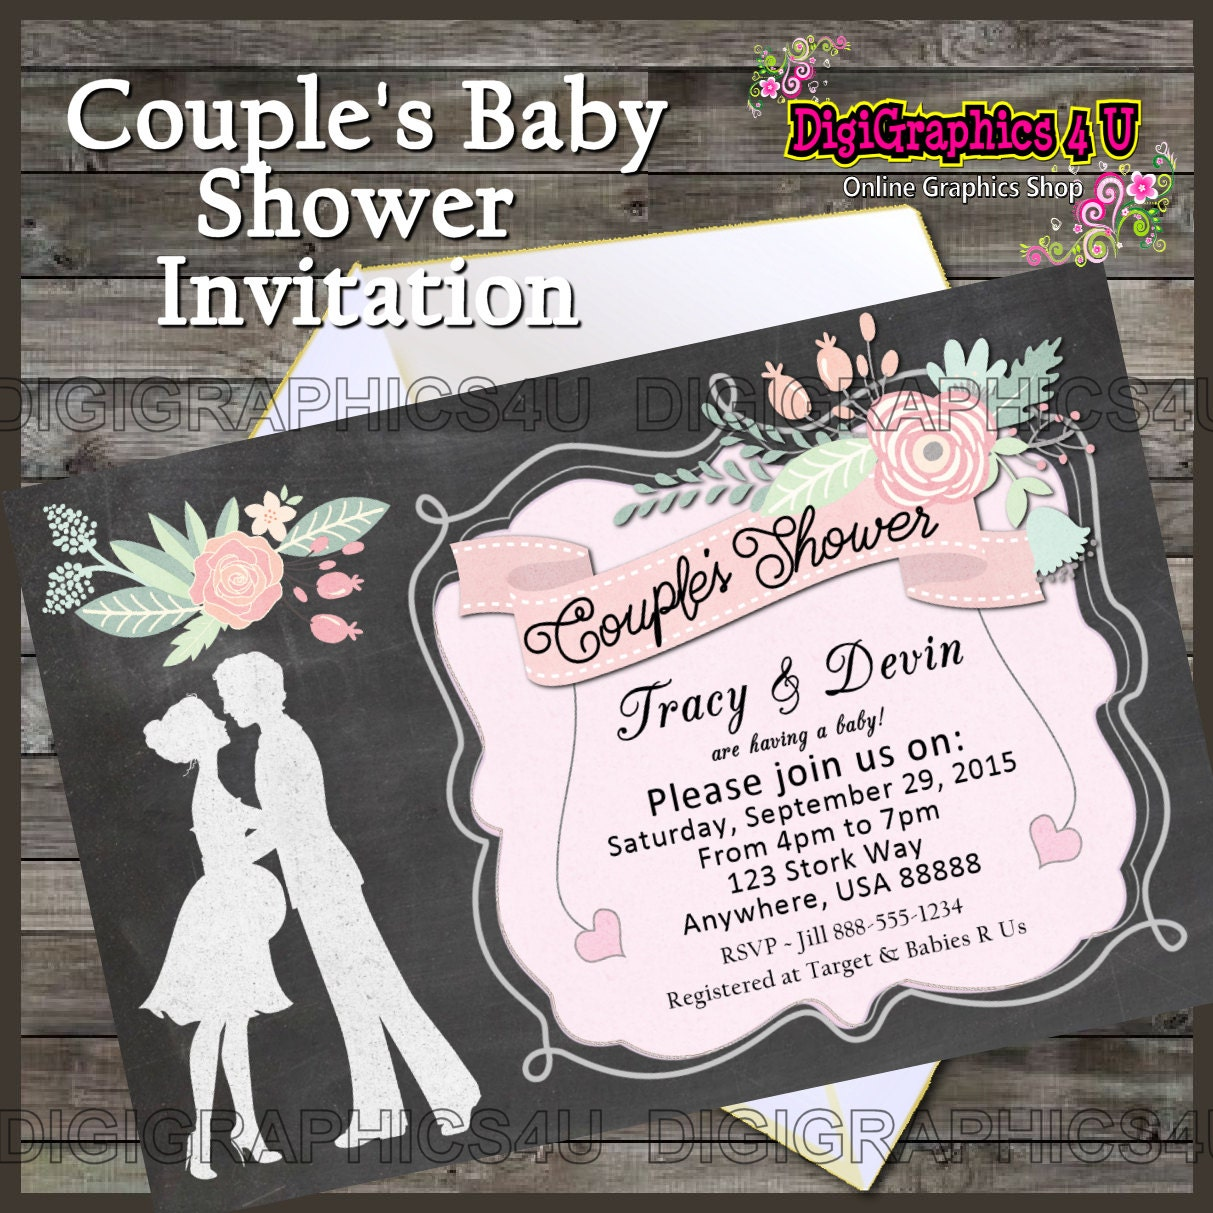 printable personalized couples baby shower by digigraphics4u